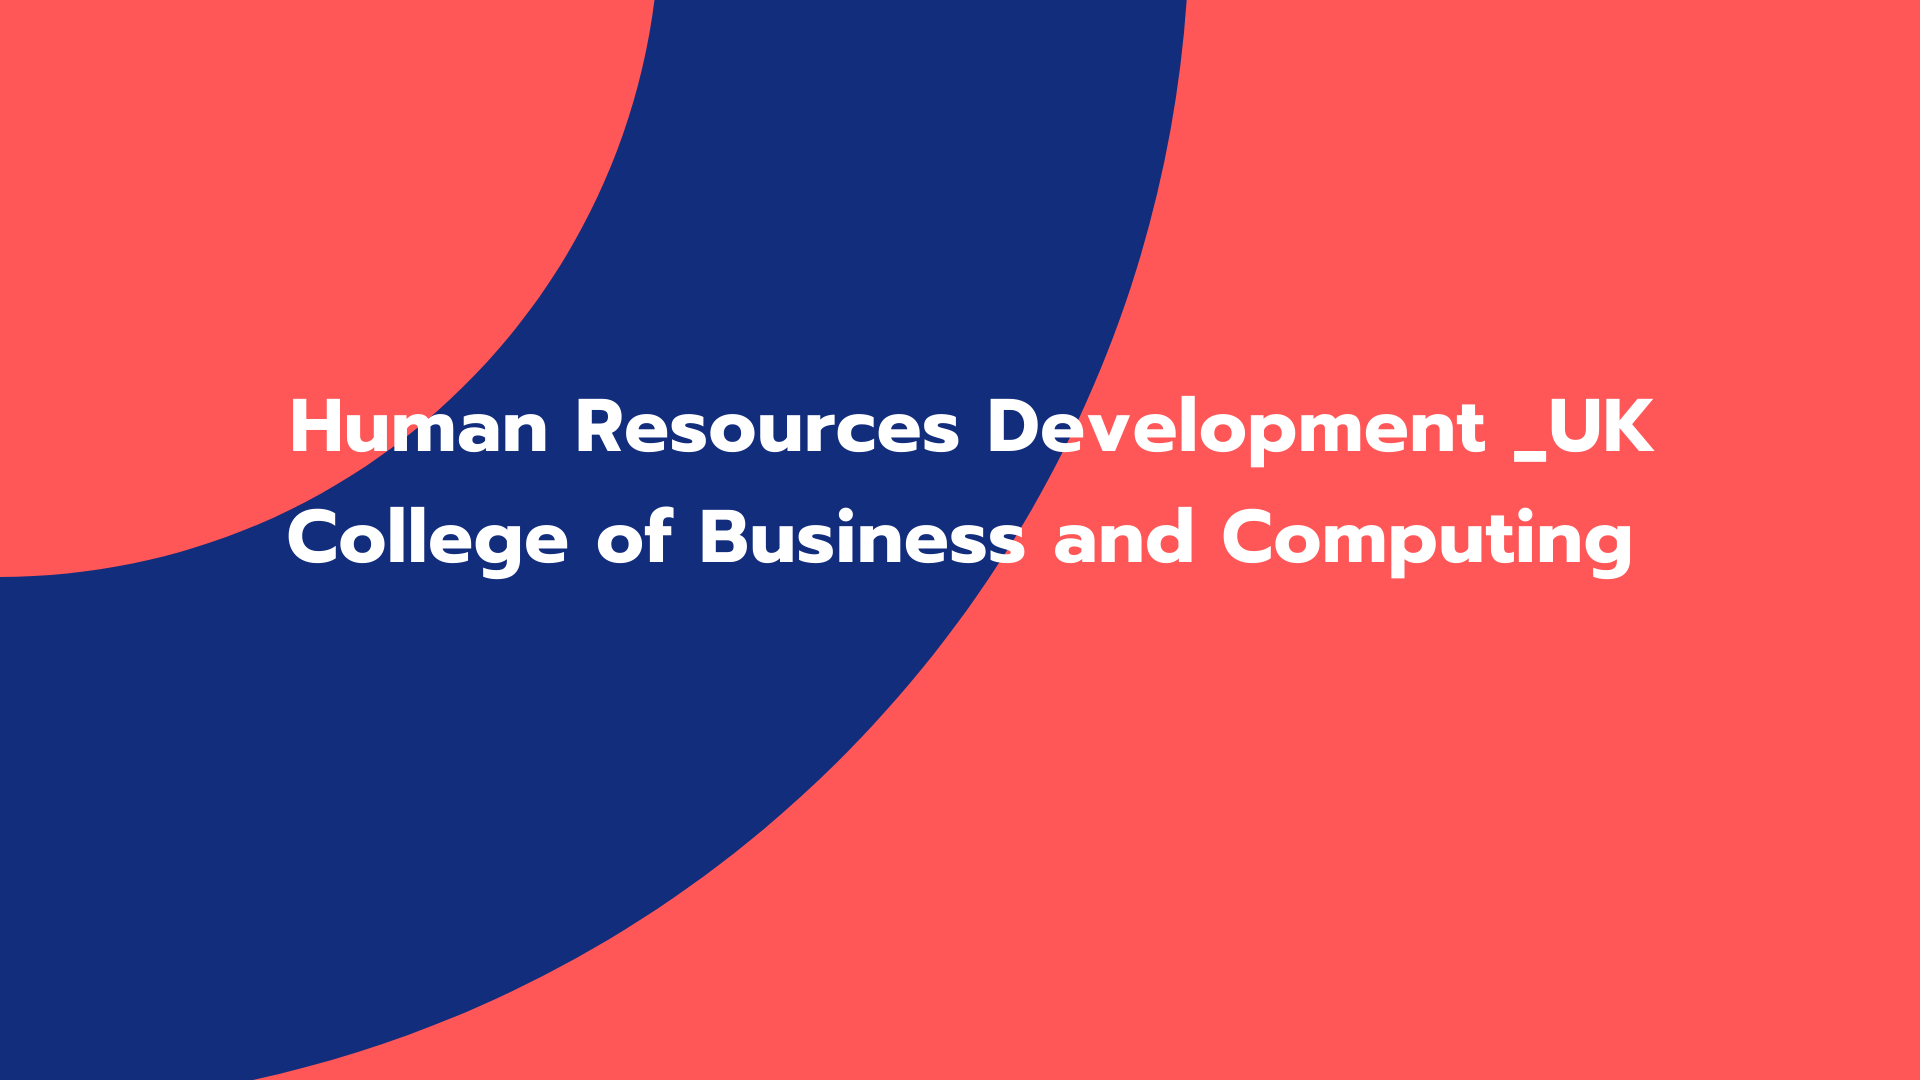 Human Resources Development _UK College of Business and Computing